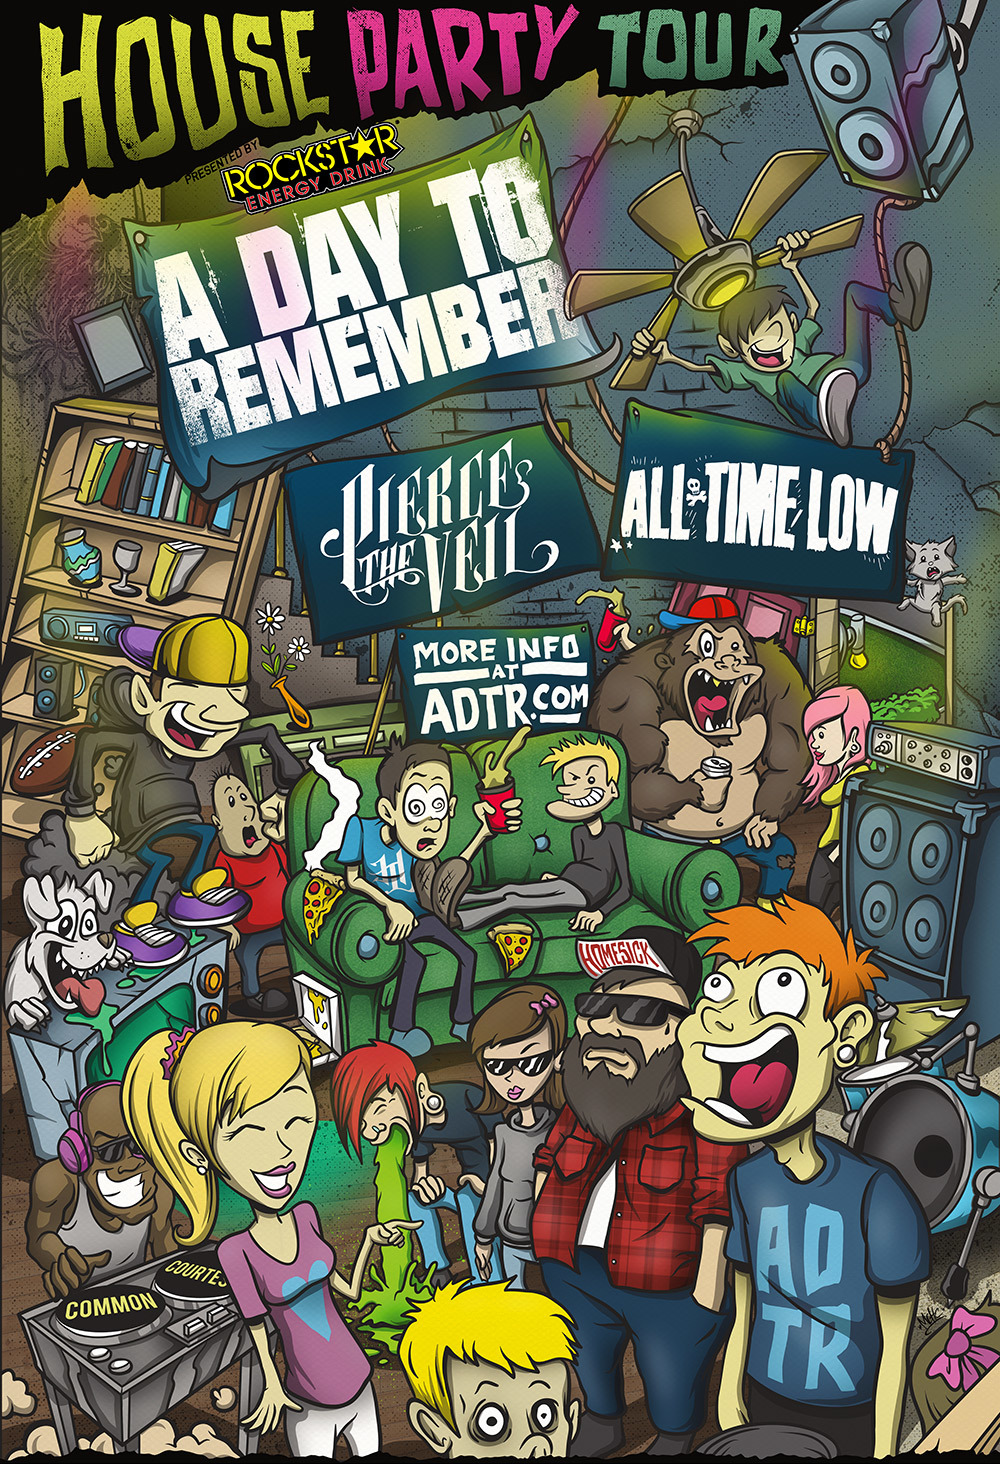 Well, it is finally announced! Check out the poster I designed for the upcoming HOUSE Party Tour with A Day To Remember, Pierce The Veil, All Time Low, and MORE! The artwork took forever and was a pain in my ass at times haha but Im xcited to finally be able to post it. The tour is gonna be sick, and we have even more in crazy stuff in store at the actual shows. Get excited spread the word and hope you enjoy. Also, you may just find someone wearing a HOTLIFE shirt in the poster. :)   -MikeC/HOTLIFE